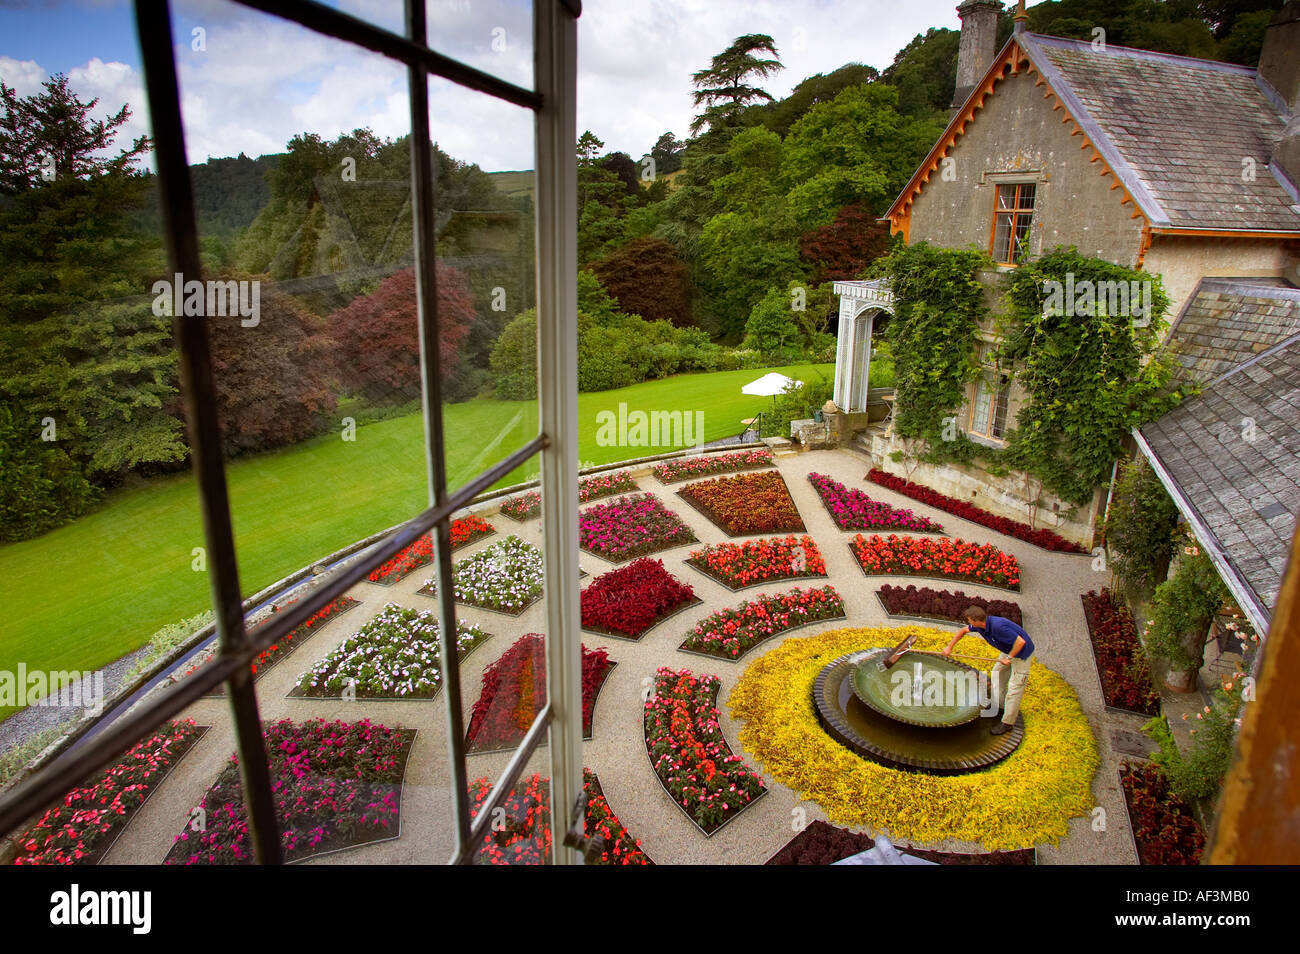 Hotel Endsleigh Milton Abbot Devon UK, owned by designer Olga Polizzi and run by her daughter Alex. - Stock Image